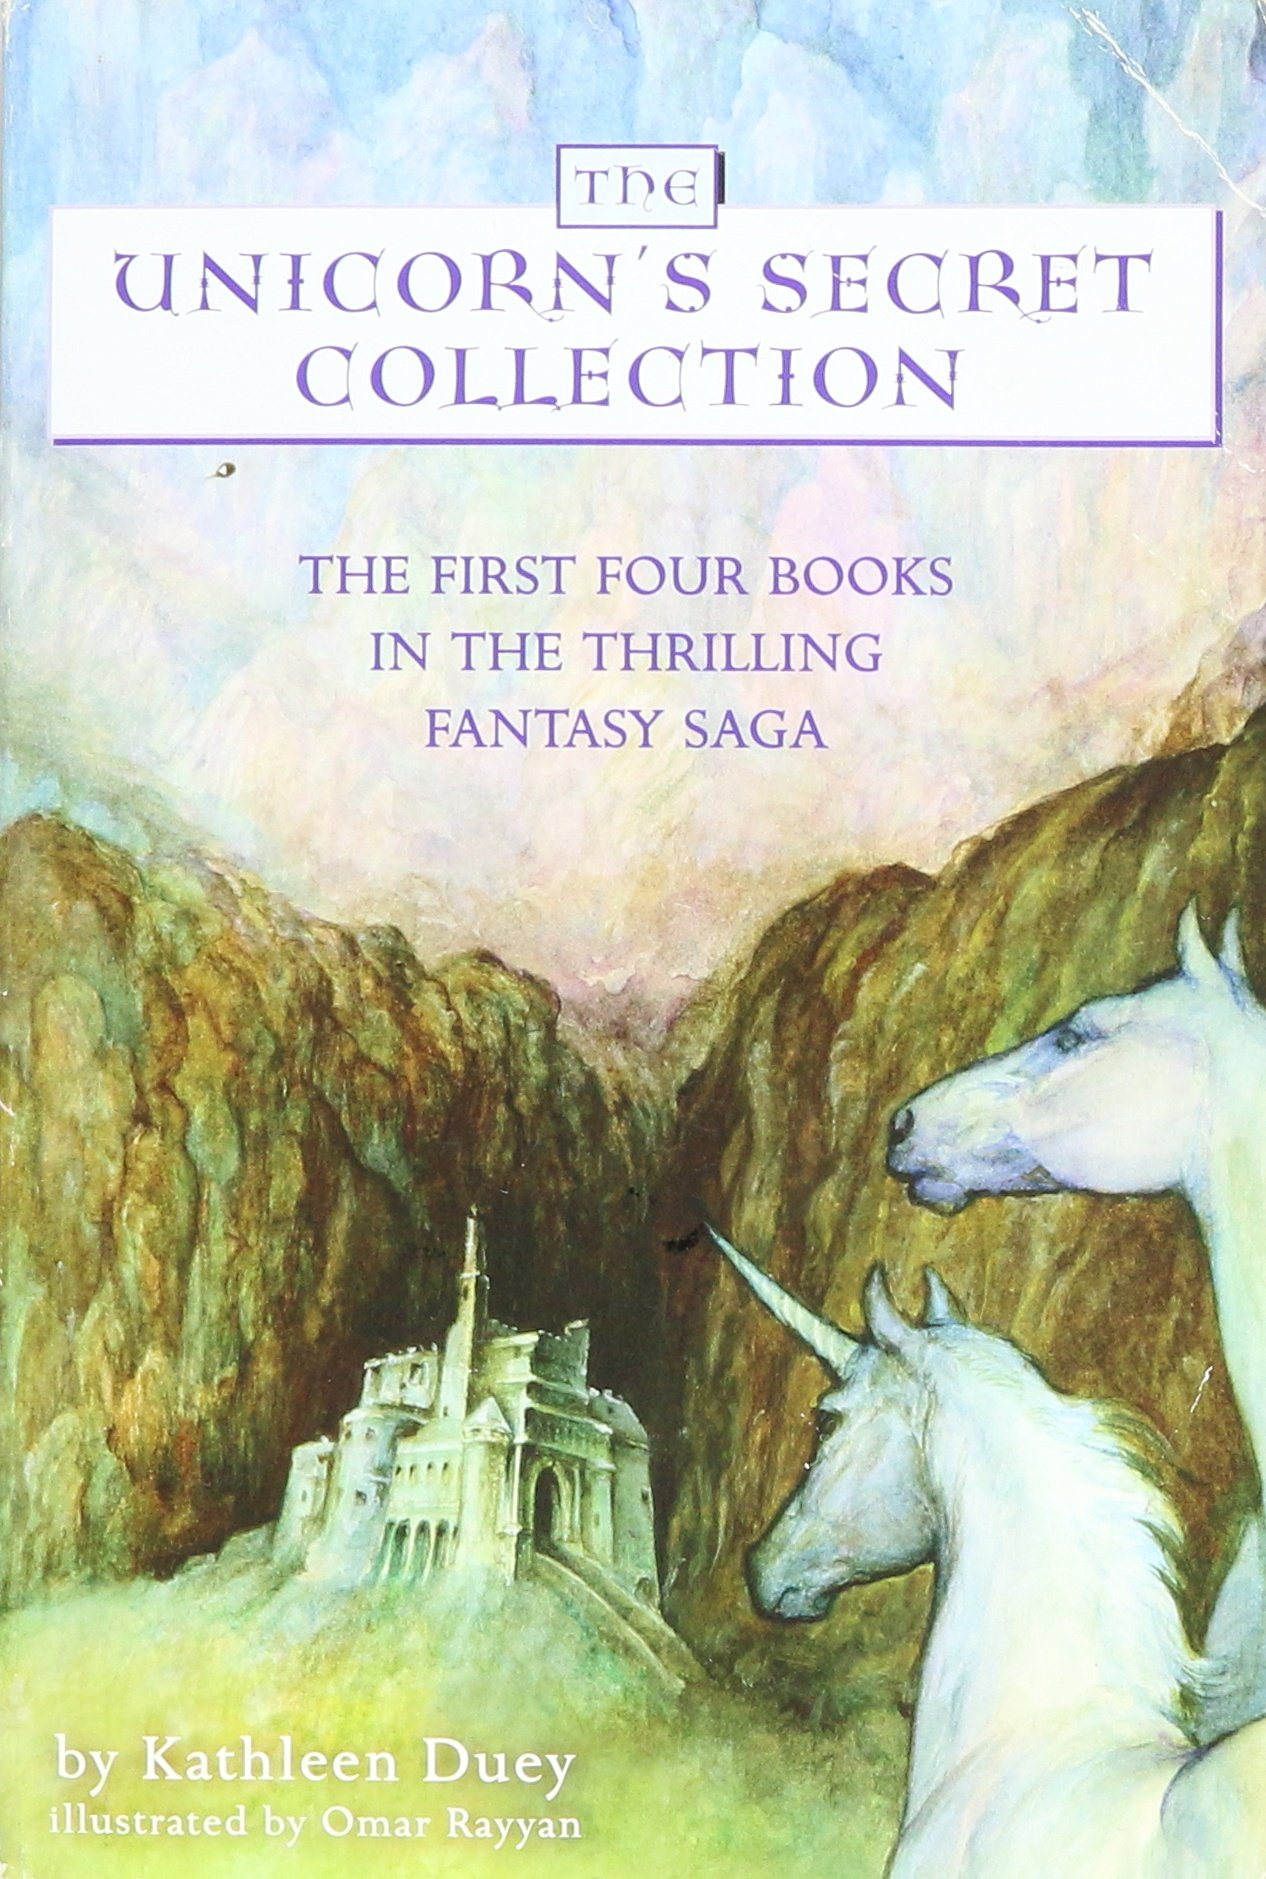 The Unicorn's Secret Collection (The First Four Books in the Thrilling Fantasy Saga) PDF